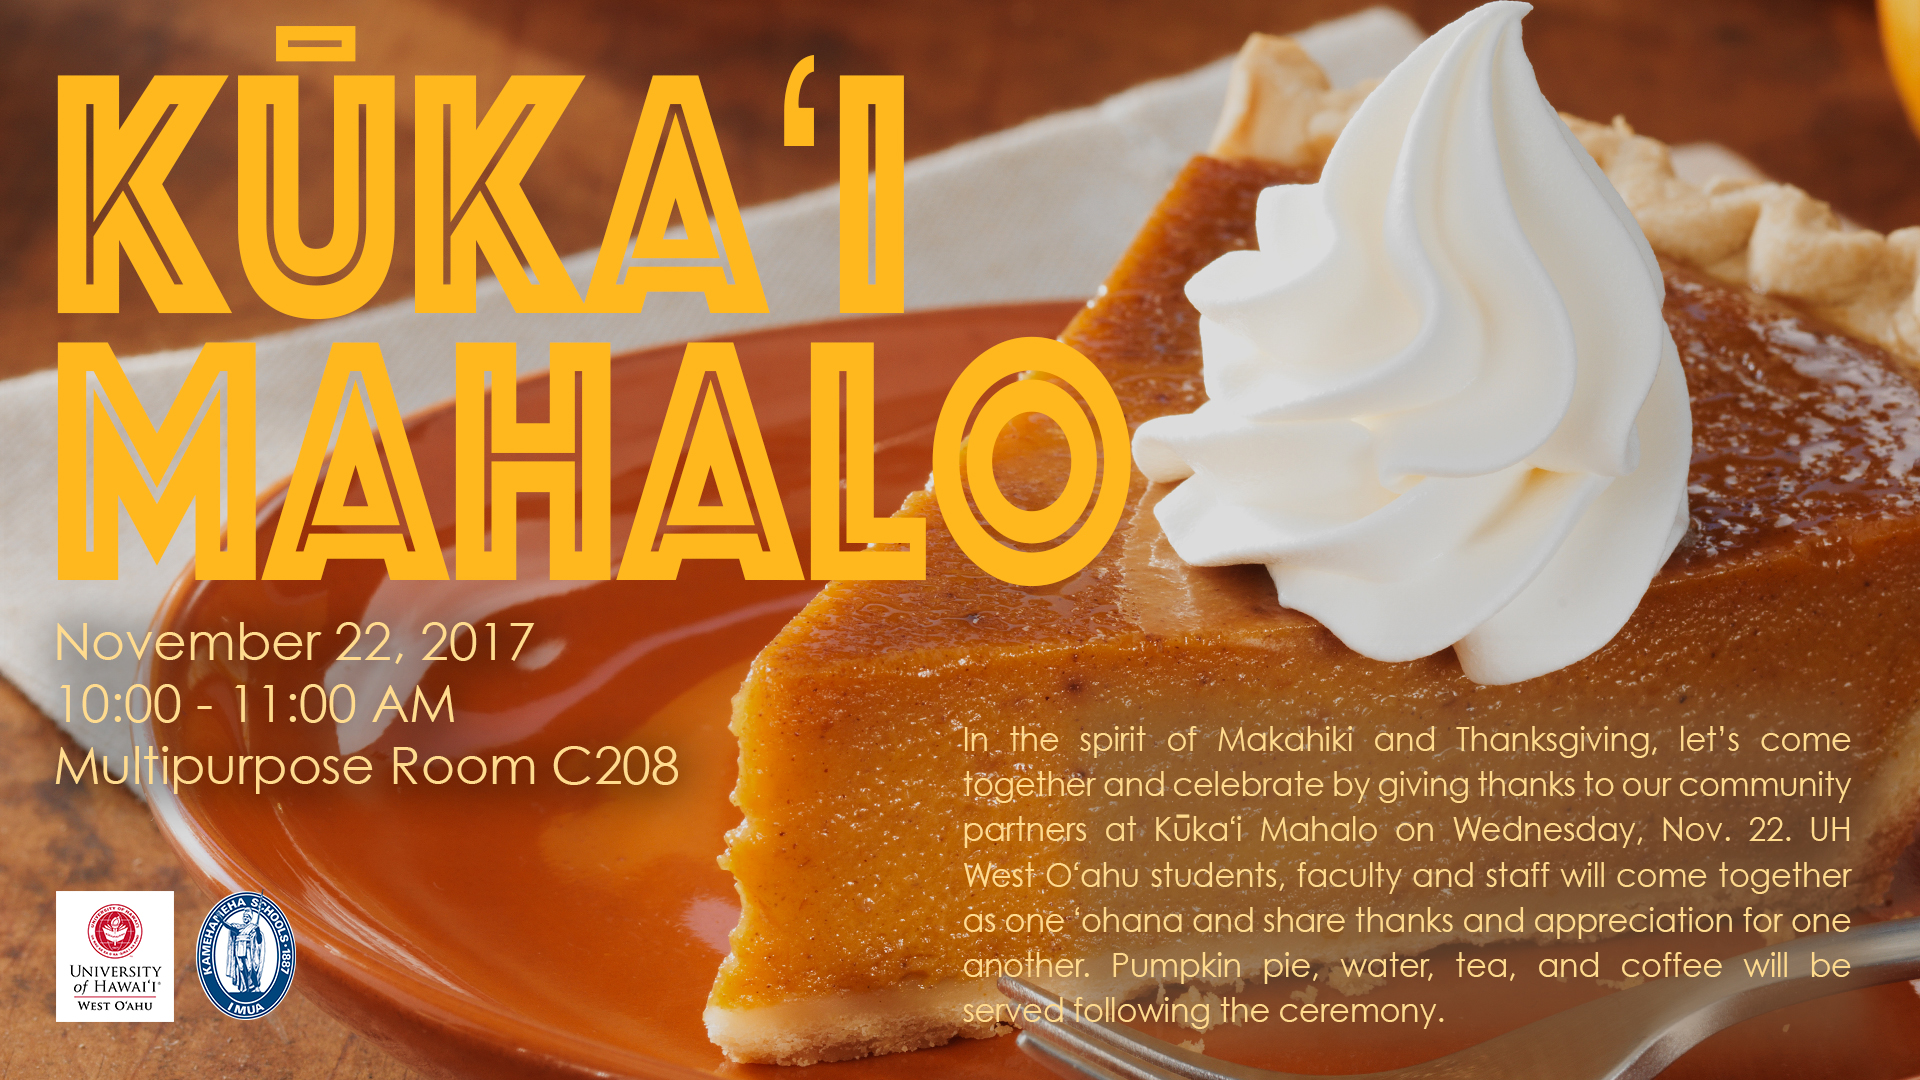 Kukai Mahalo flyer announcing event. Contains information similar to what is in the artilce